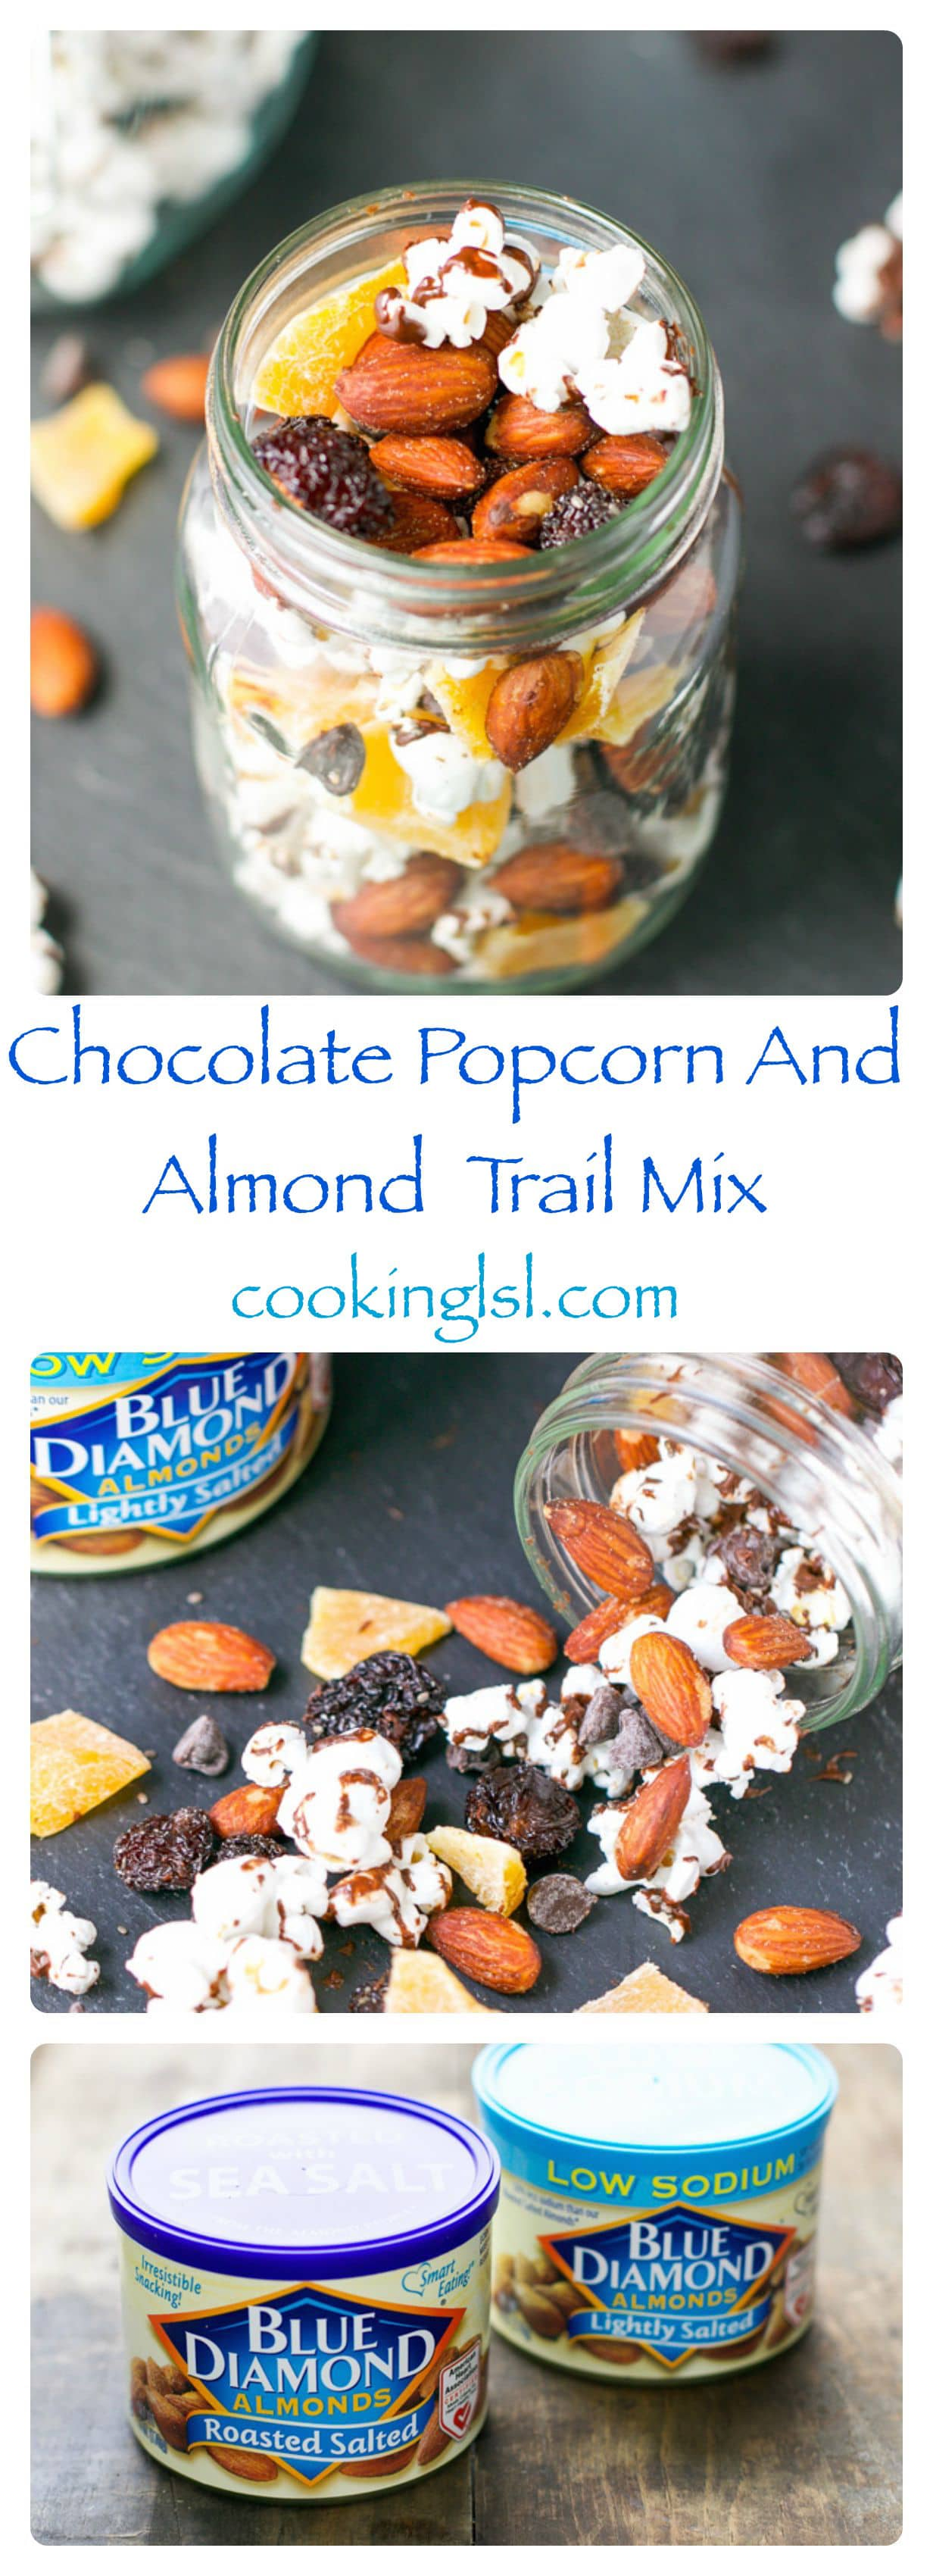 chocolate-popcorn-almond-cherry-mango-trail-mix-blue-diamond